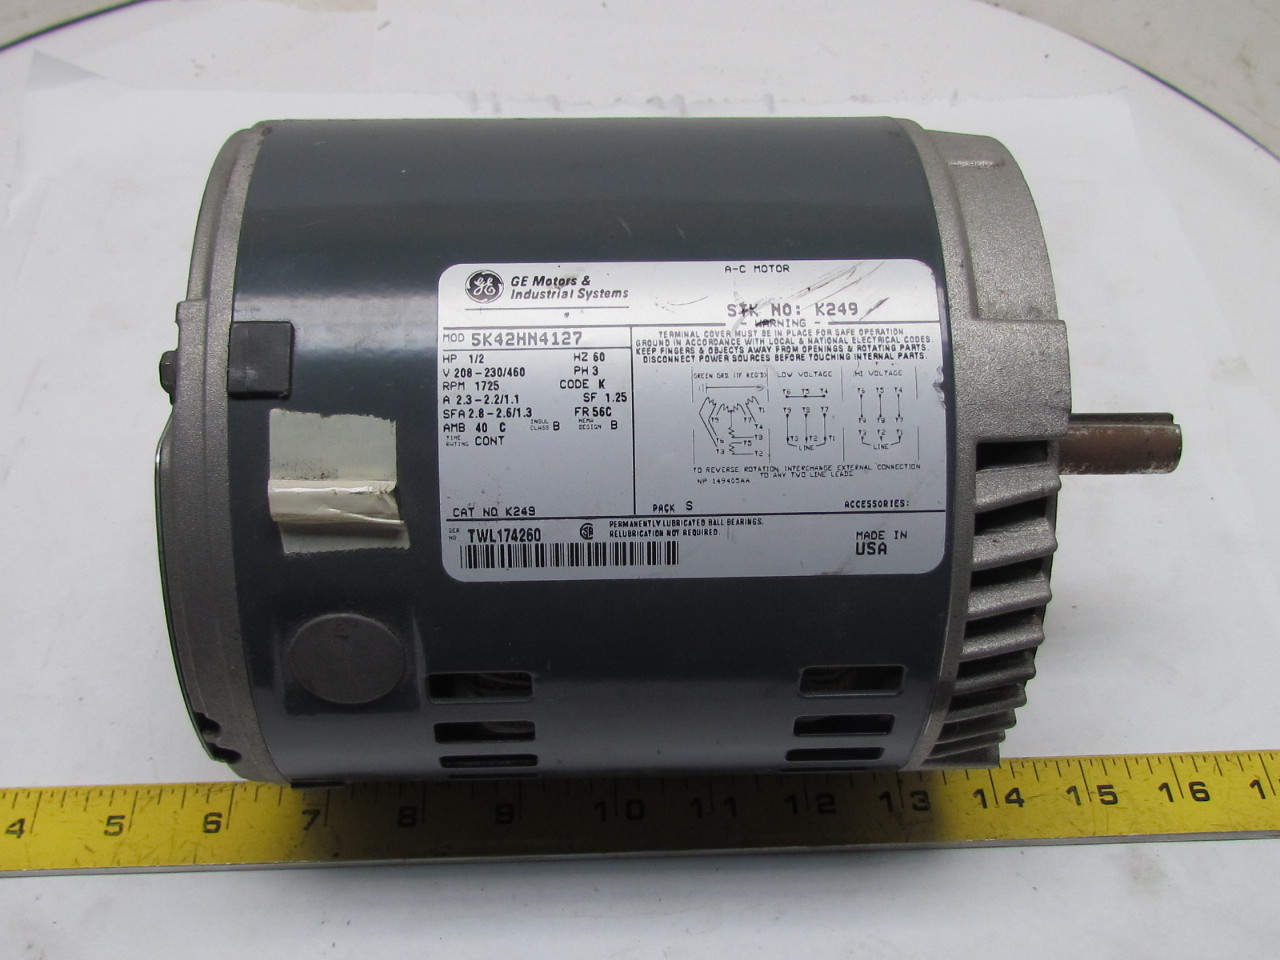 General electric 5k42hn4127 3ph ac motor 1 2hp 1725 rpm for 1 2 hp ac motor